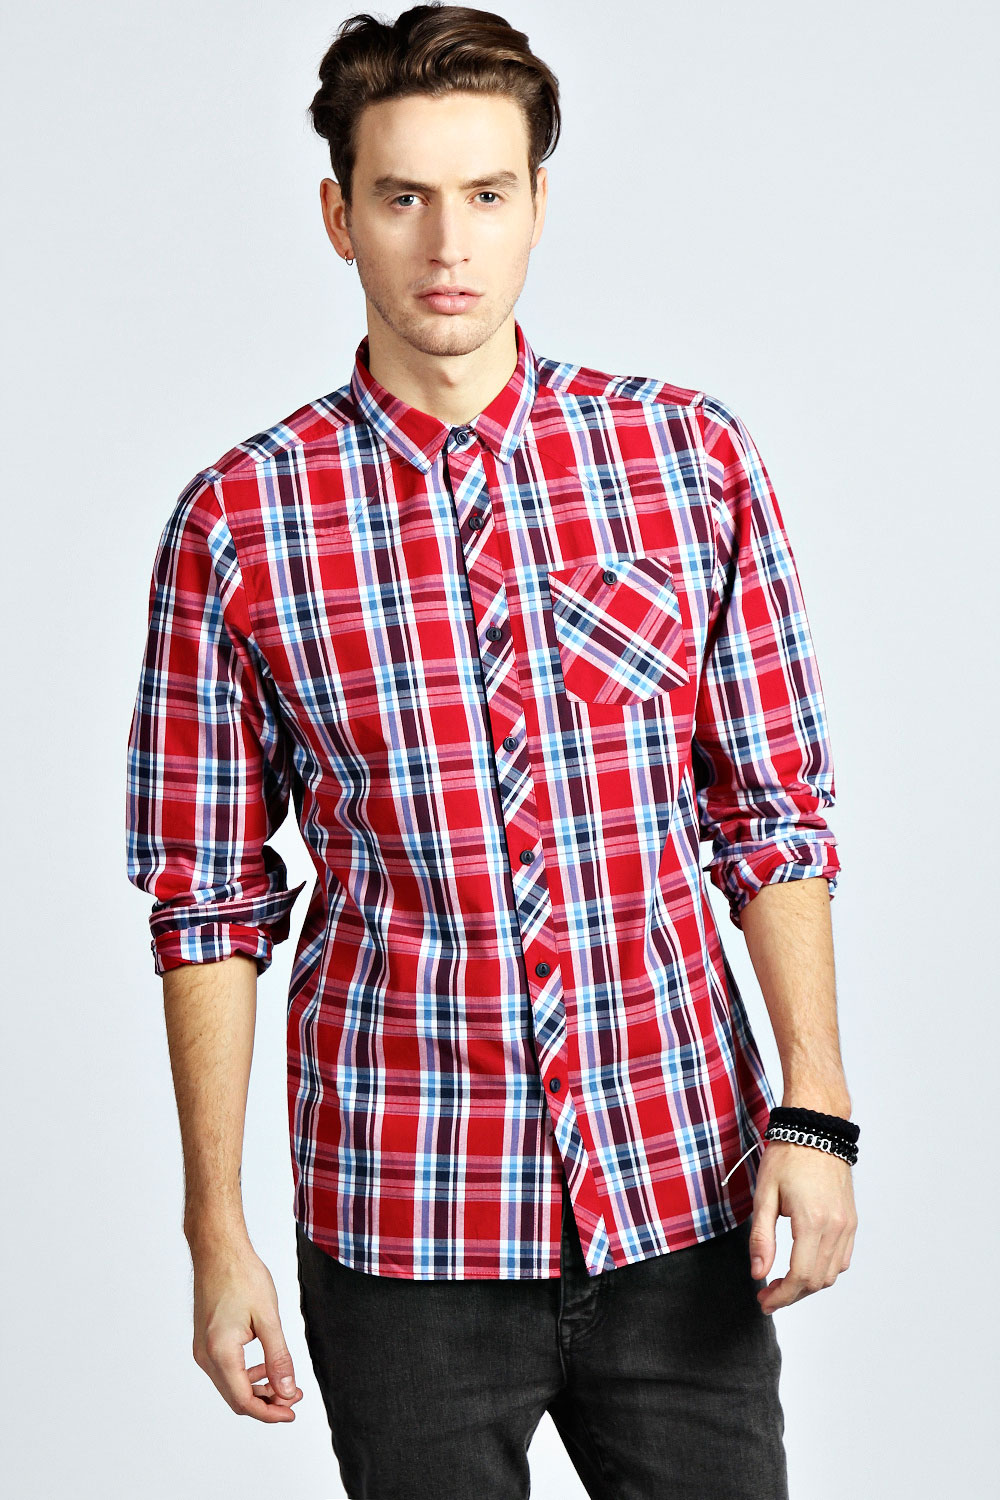 Boohoo-Mens-Long-Sleeve-Western-Style-Check-Cotton-Shirt-in-Red